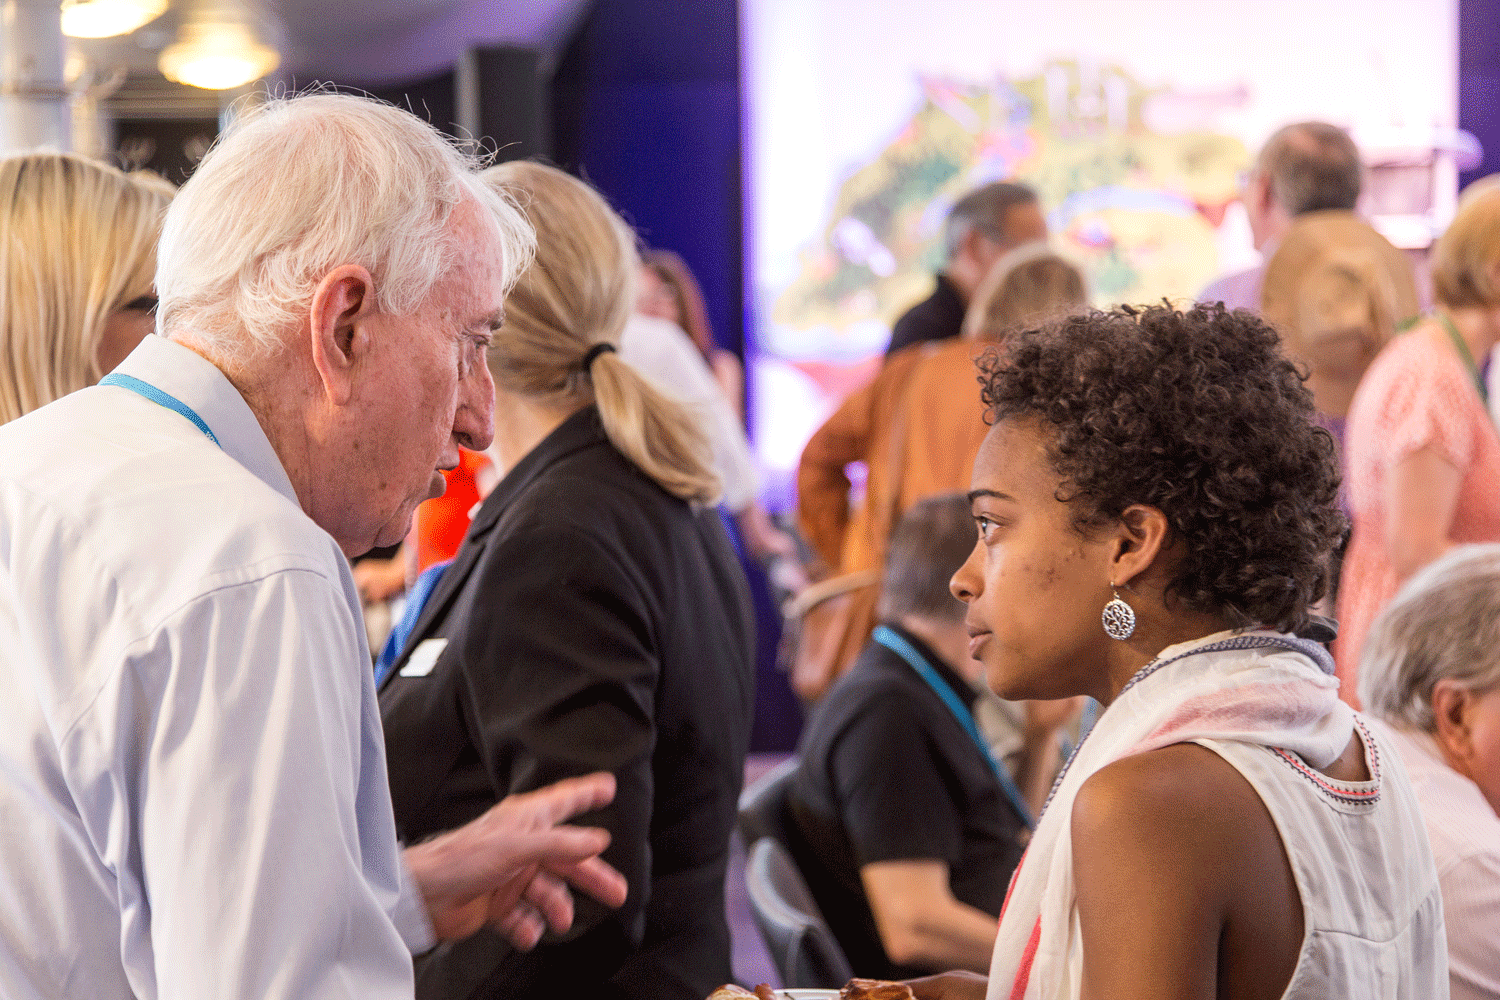 Nobel Laureate Peter Doherty giving advice to young scientist Julia Nepper at the 65th Lindau Nobel Laureate Meeting.